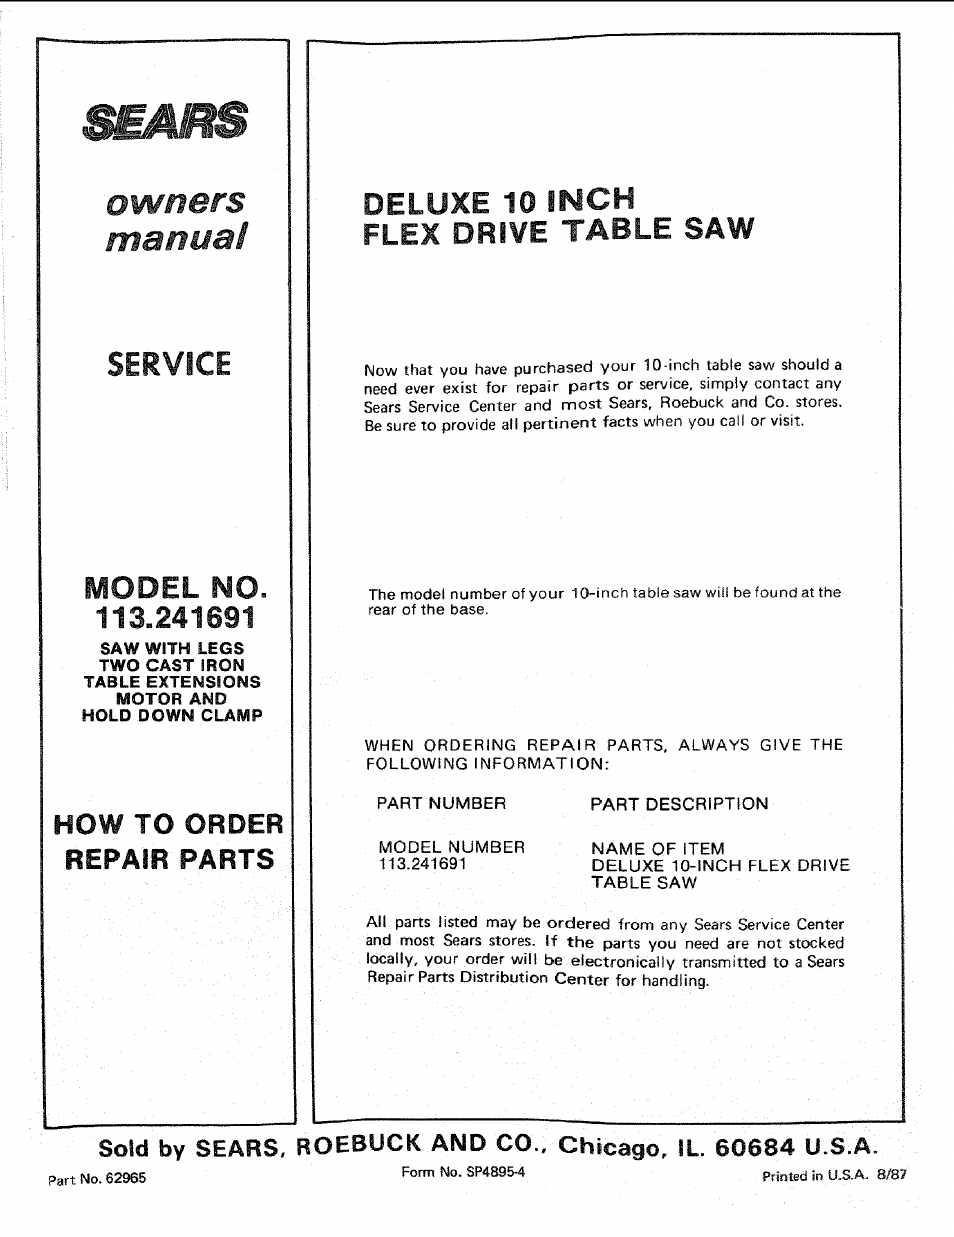 113.241691, Deluxe 10 inch, Owners manual | Sears 113.241591 User Manual |  Page 52 / 52